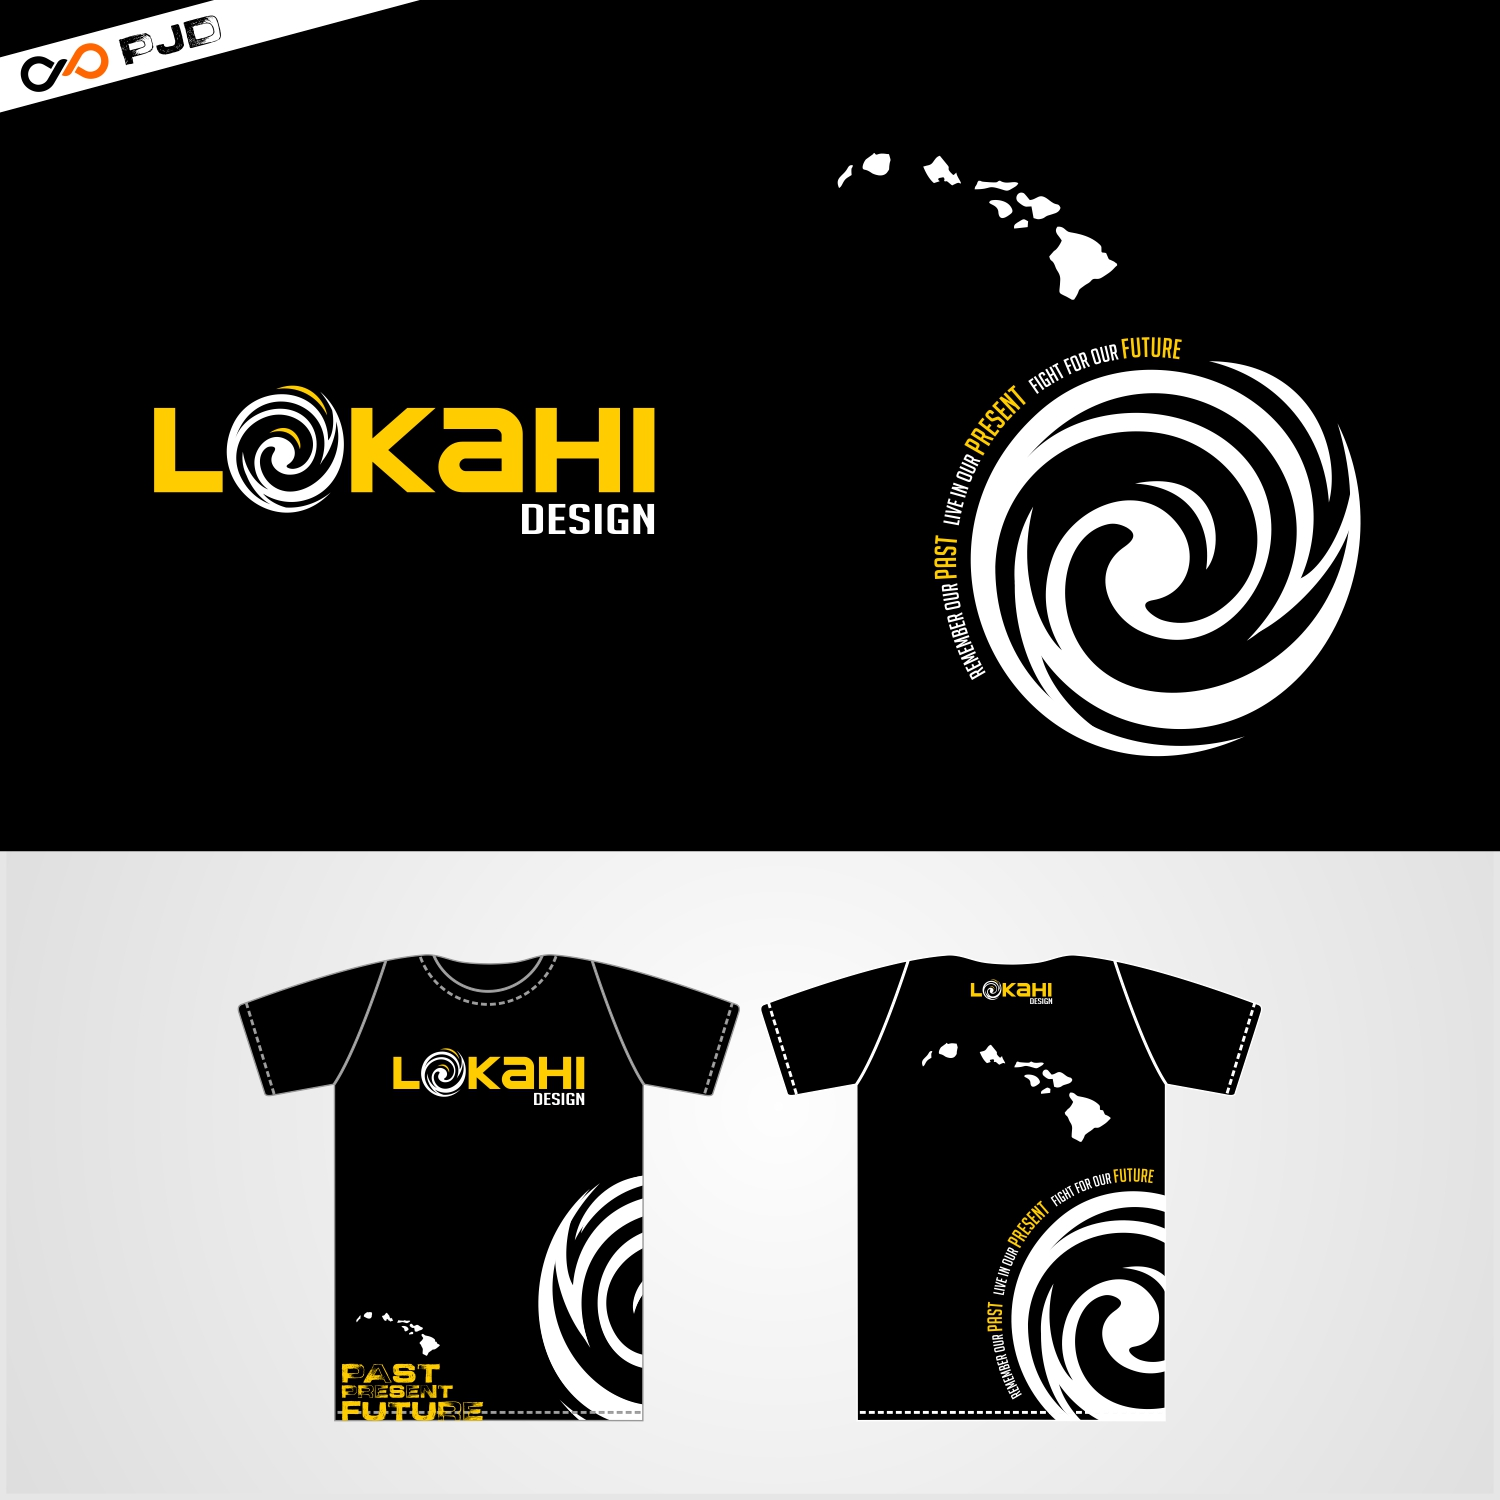 Clothing Design by PJD - Entry No. 145 in the Clothing Design Contest Creative Clothing Design for LOKAHI designs.